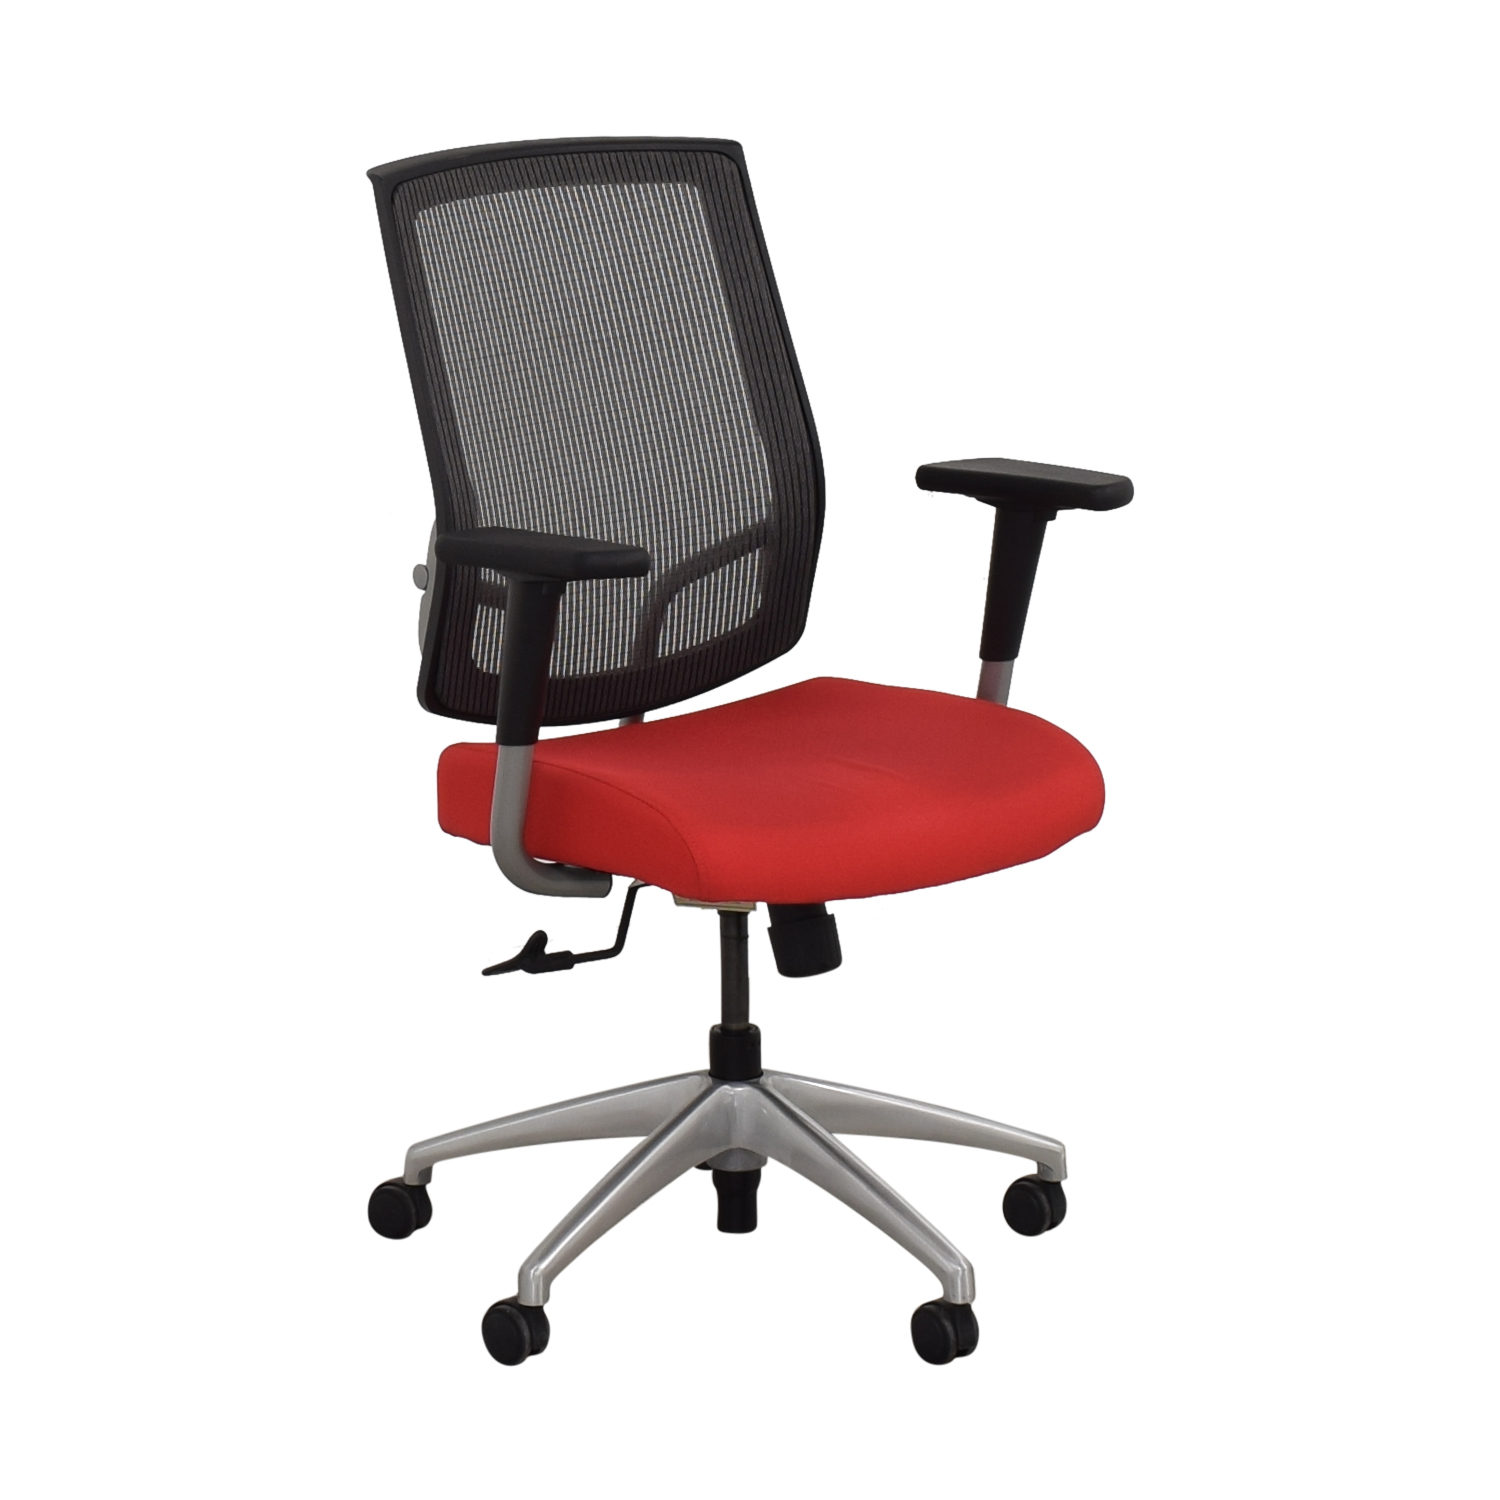 SitOnIt SitOnIt Focus High Back Office Chair nj